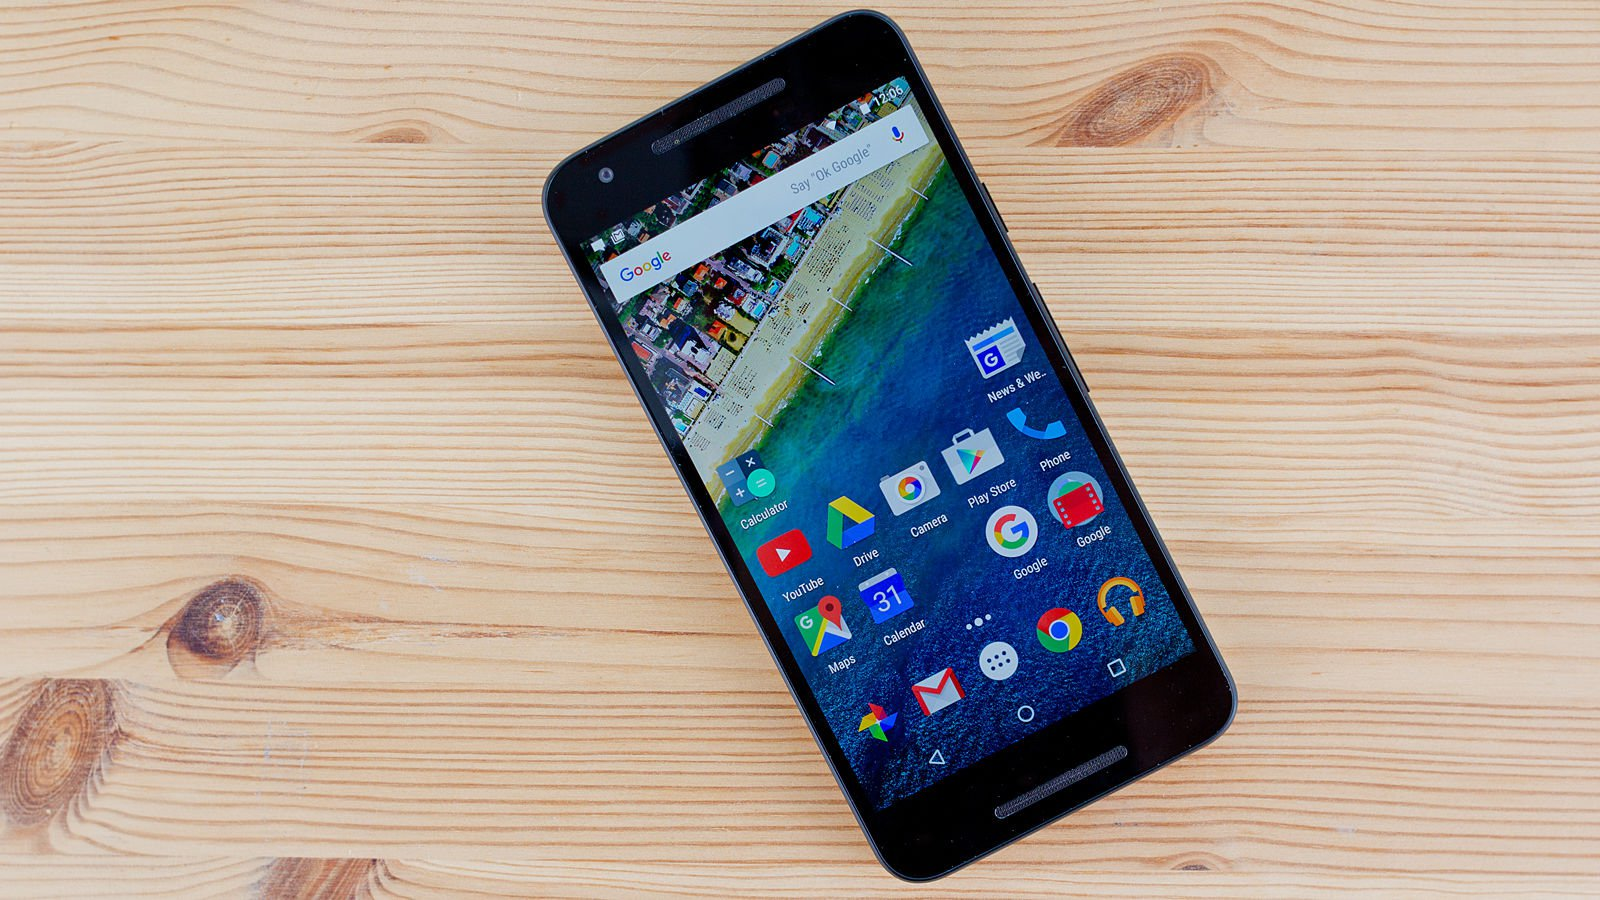 LG Phone Rate - LG Nexus 5X at $399 with 7% Off